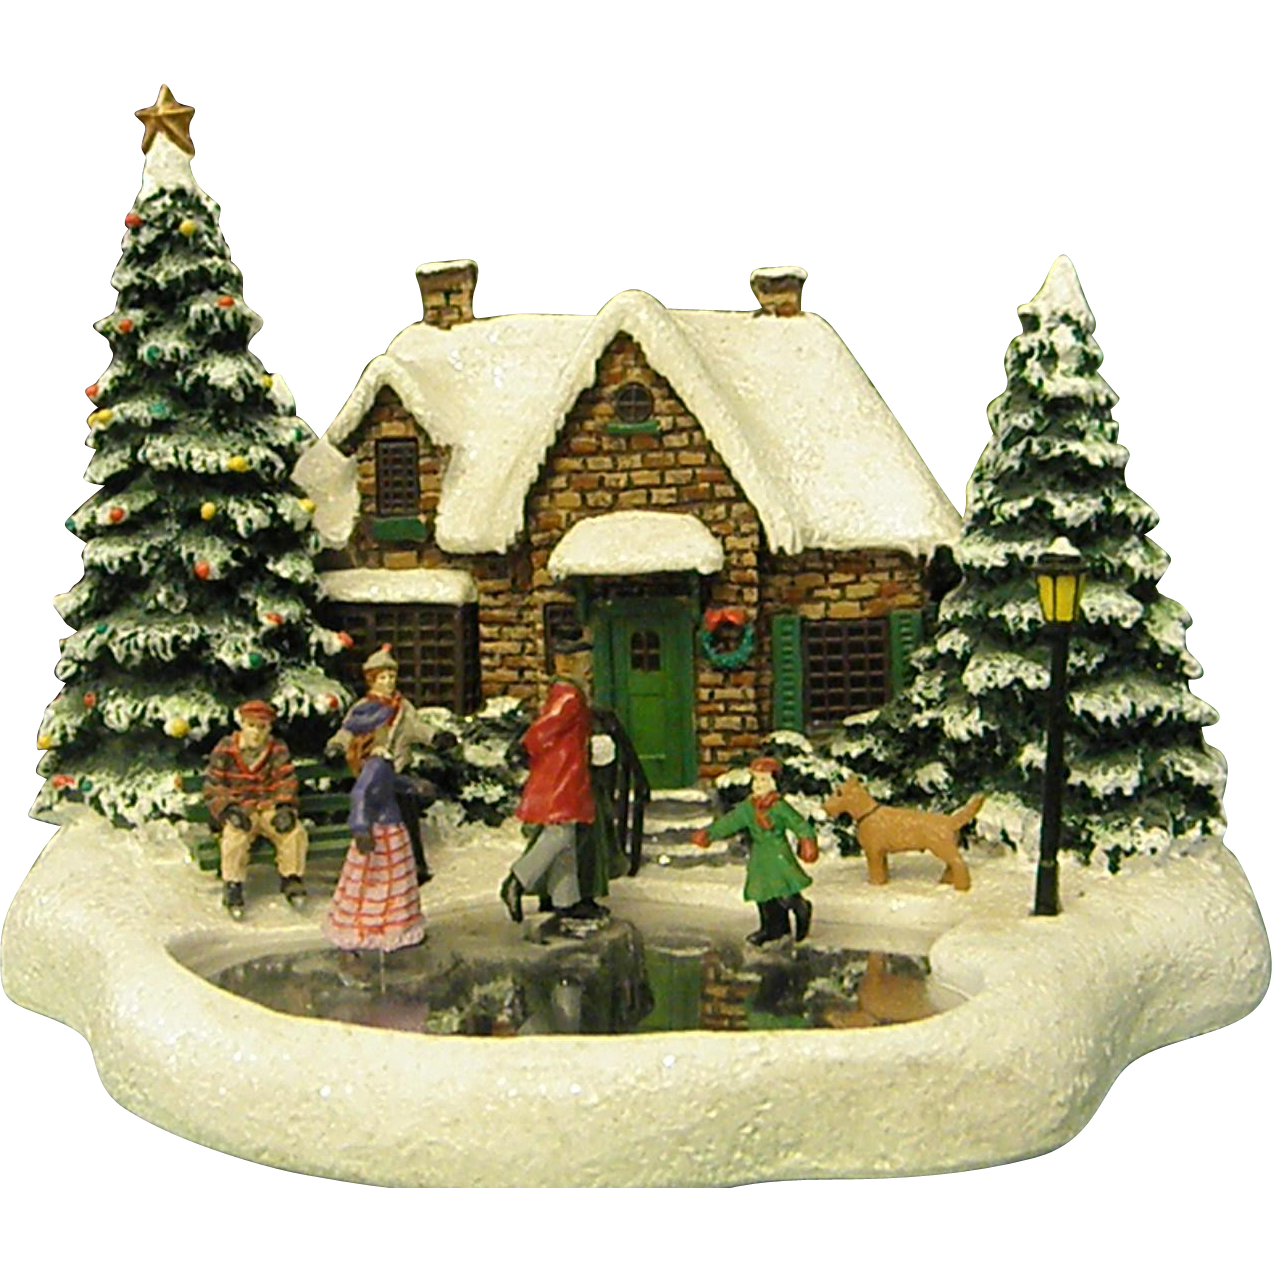 home for the holidays the thomas kinkade company home for the holidays national lampoon s christmas vacation pinterest vacation studio national lampoon s